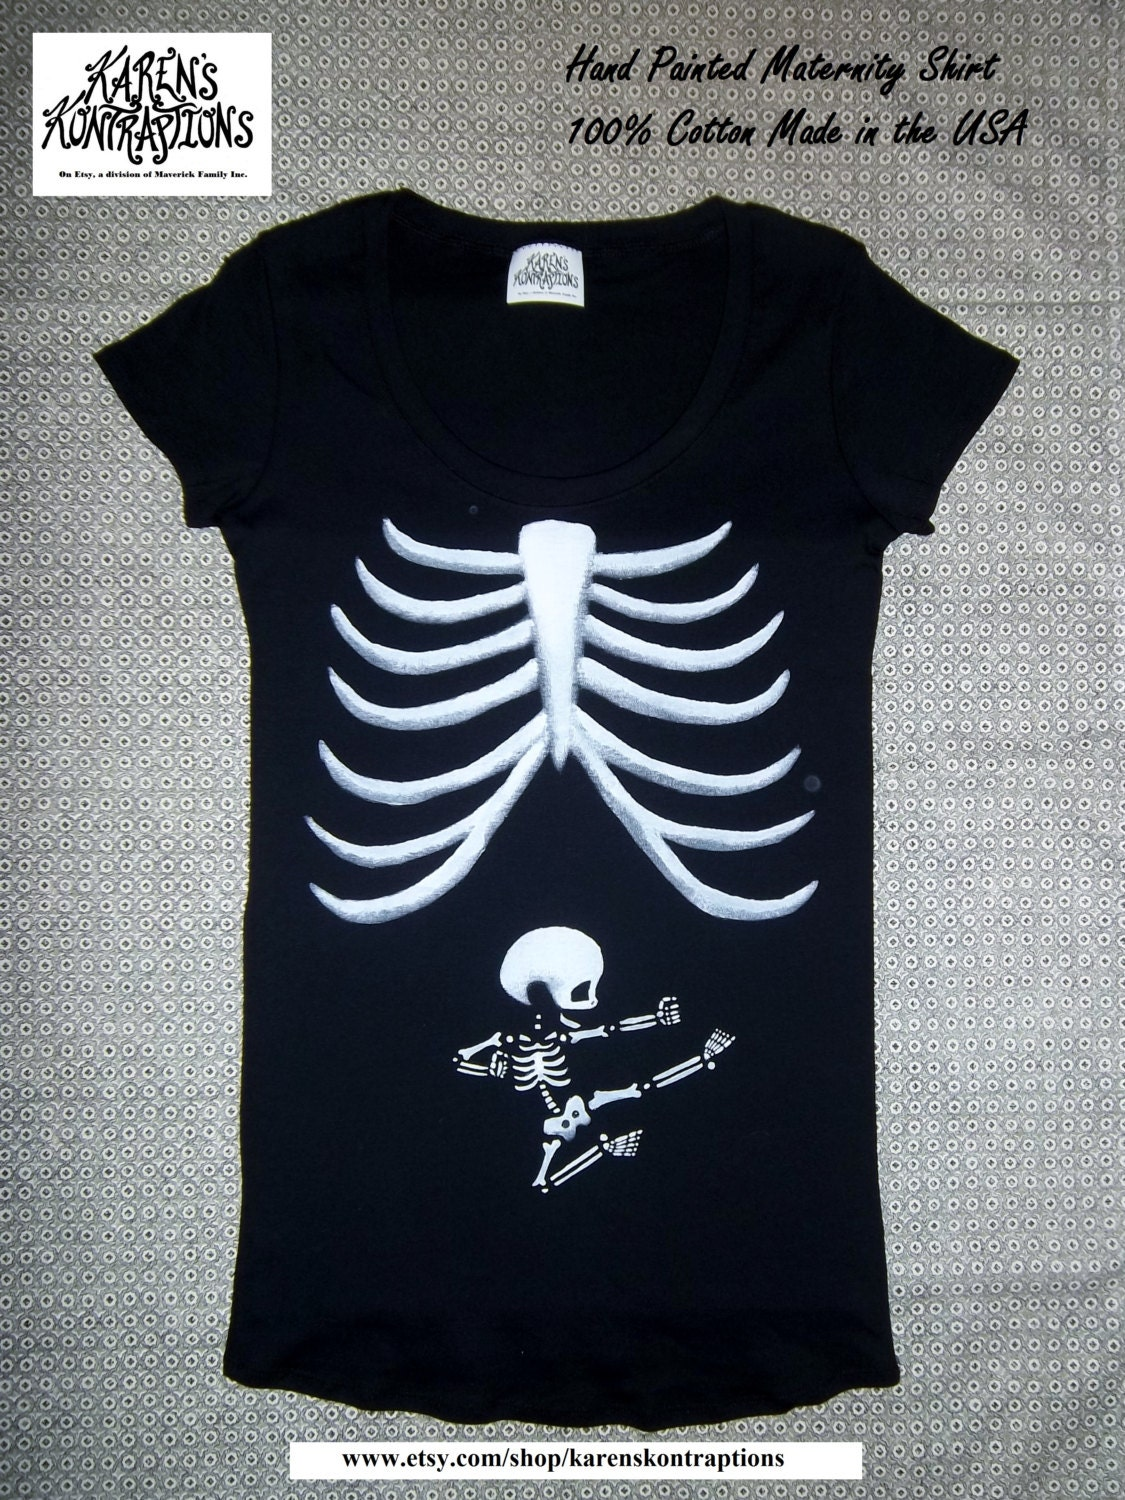 What better way to celebrate your pregnancy than with high quality Skeleton Maternity T-Shirts. There are so many ways to do it. If you're feeling pretty and preppy we've got something just for you.